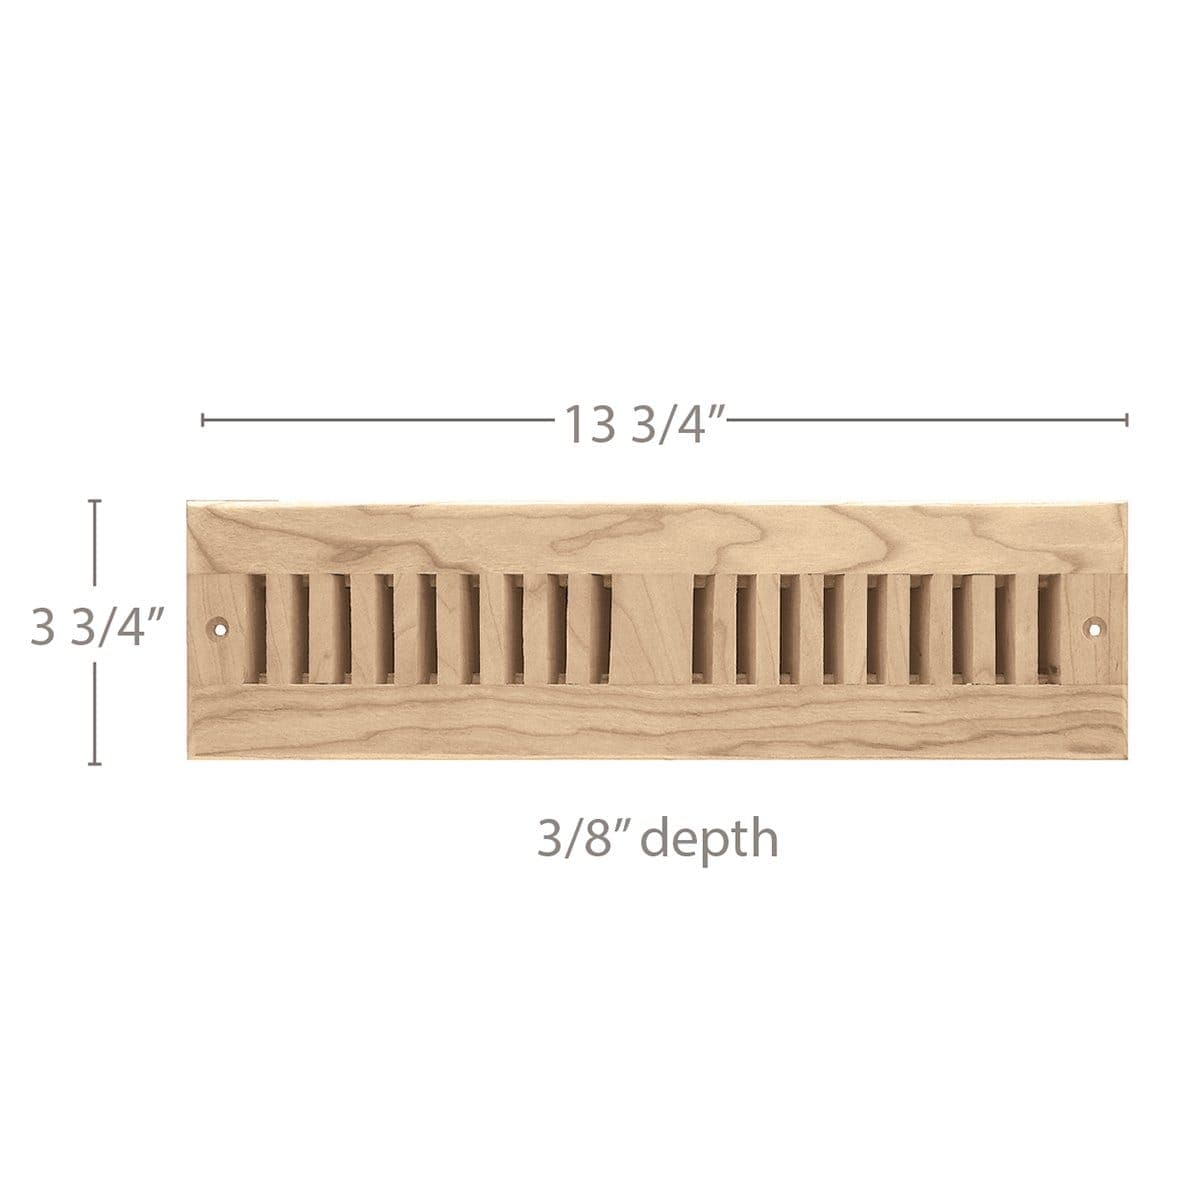 "2 x 12 Vent, 3 3/4"" x 3/8"" x 11 3/4"" length, Self Rimming Toe Kick Vent"